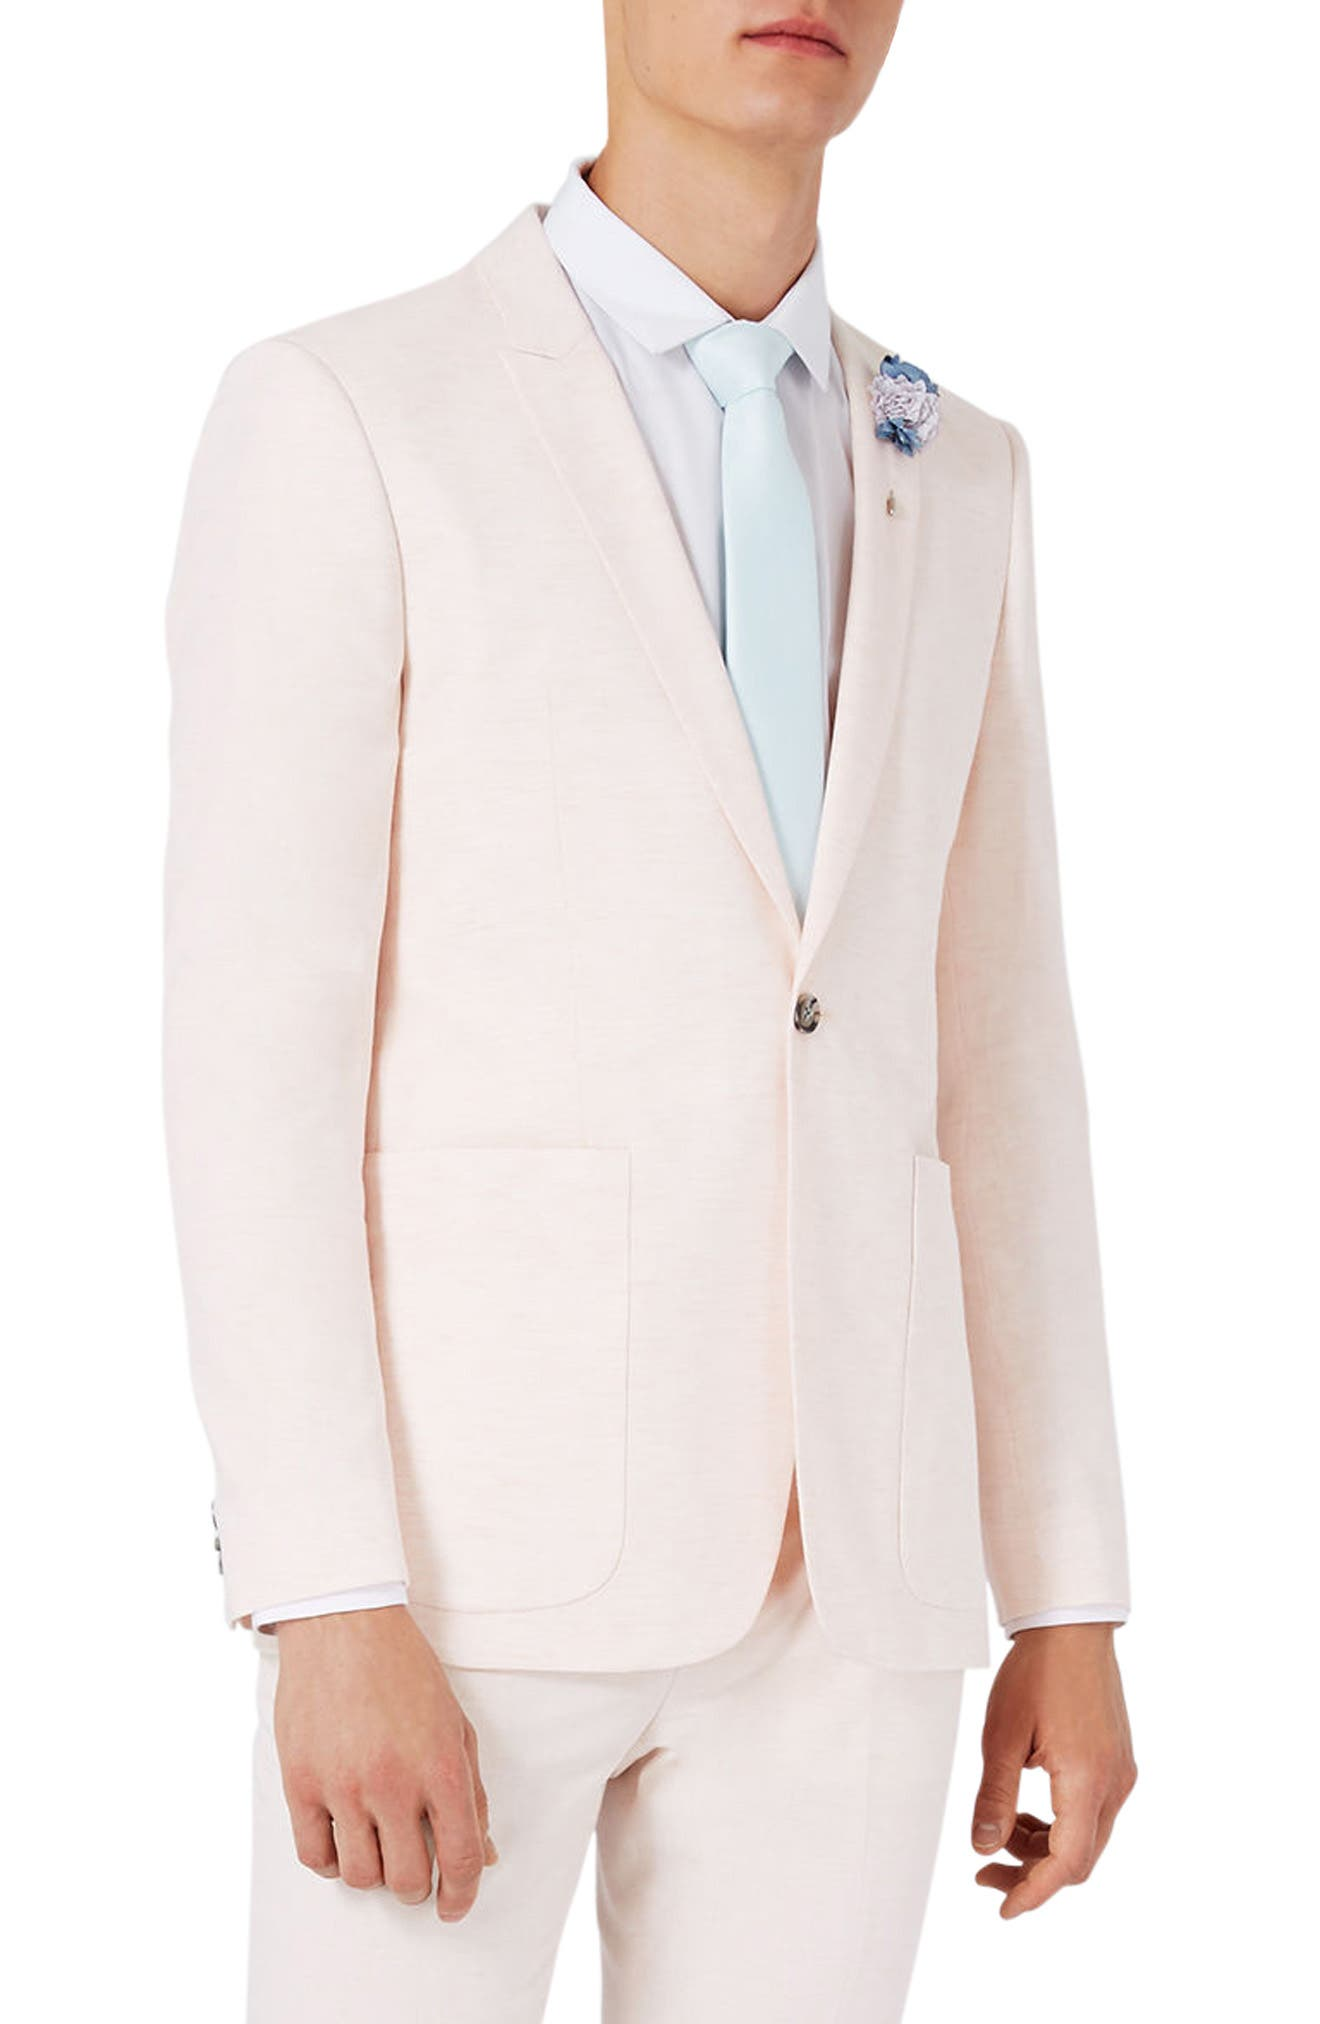 Topman Lightweight Skinny Fit Suit Jacket